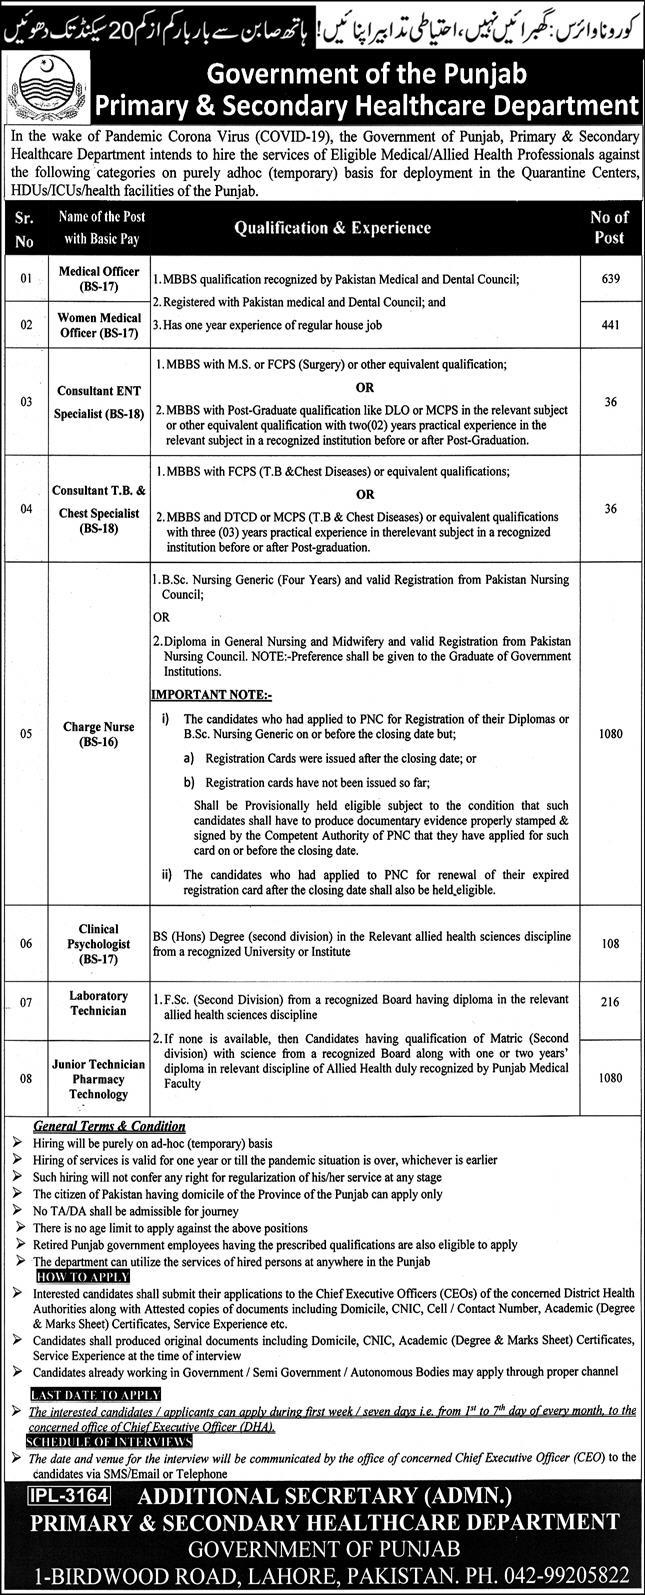 Government of the Punjab Primary & Secondary Healthcare Department Lahore